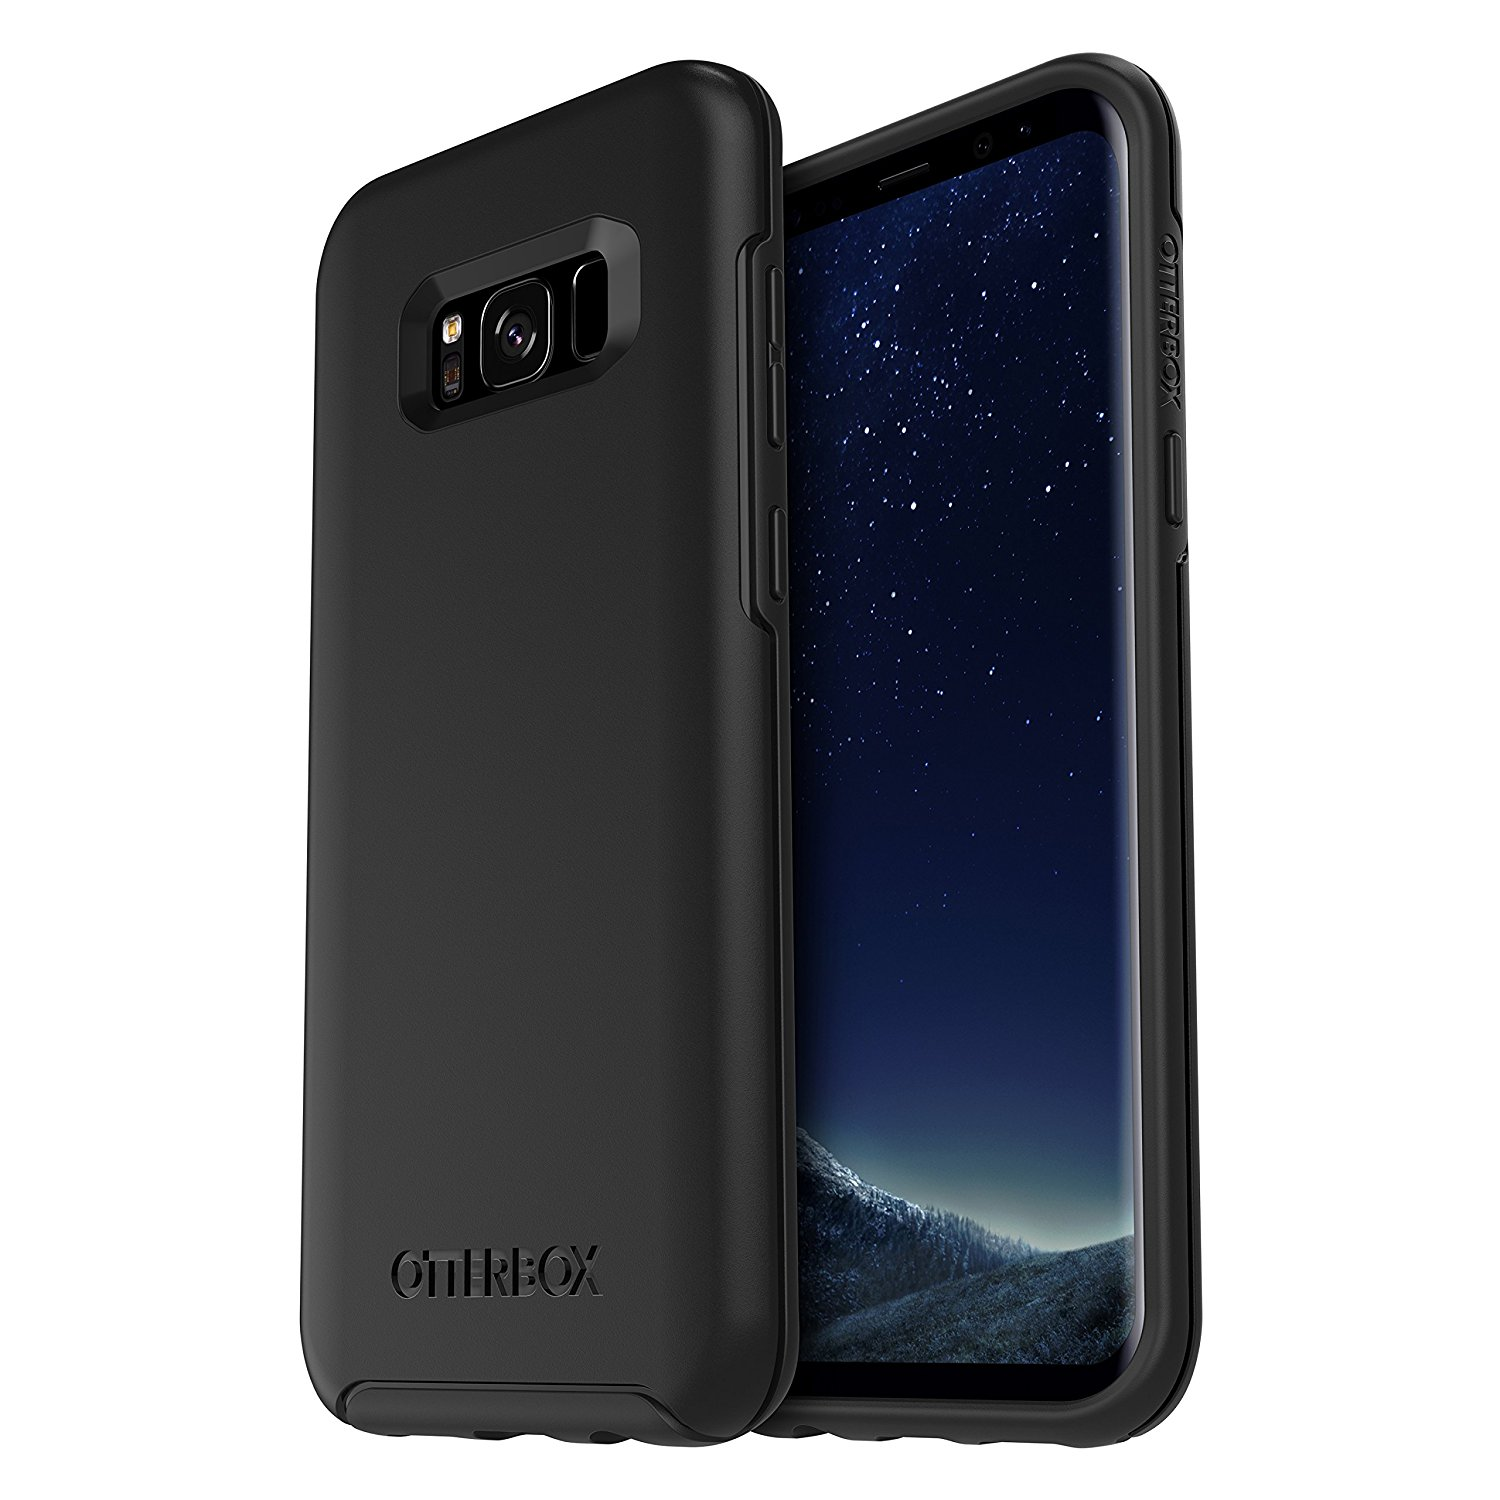 Otterbox Symmetry Case for Galaxy S8+